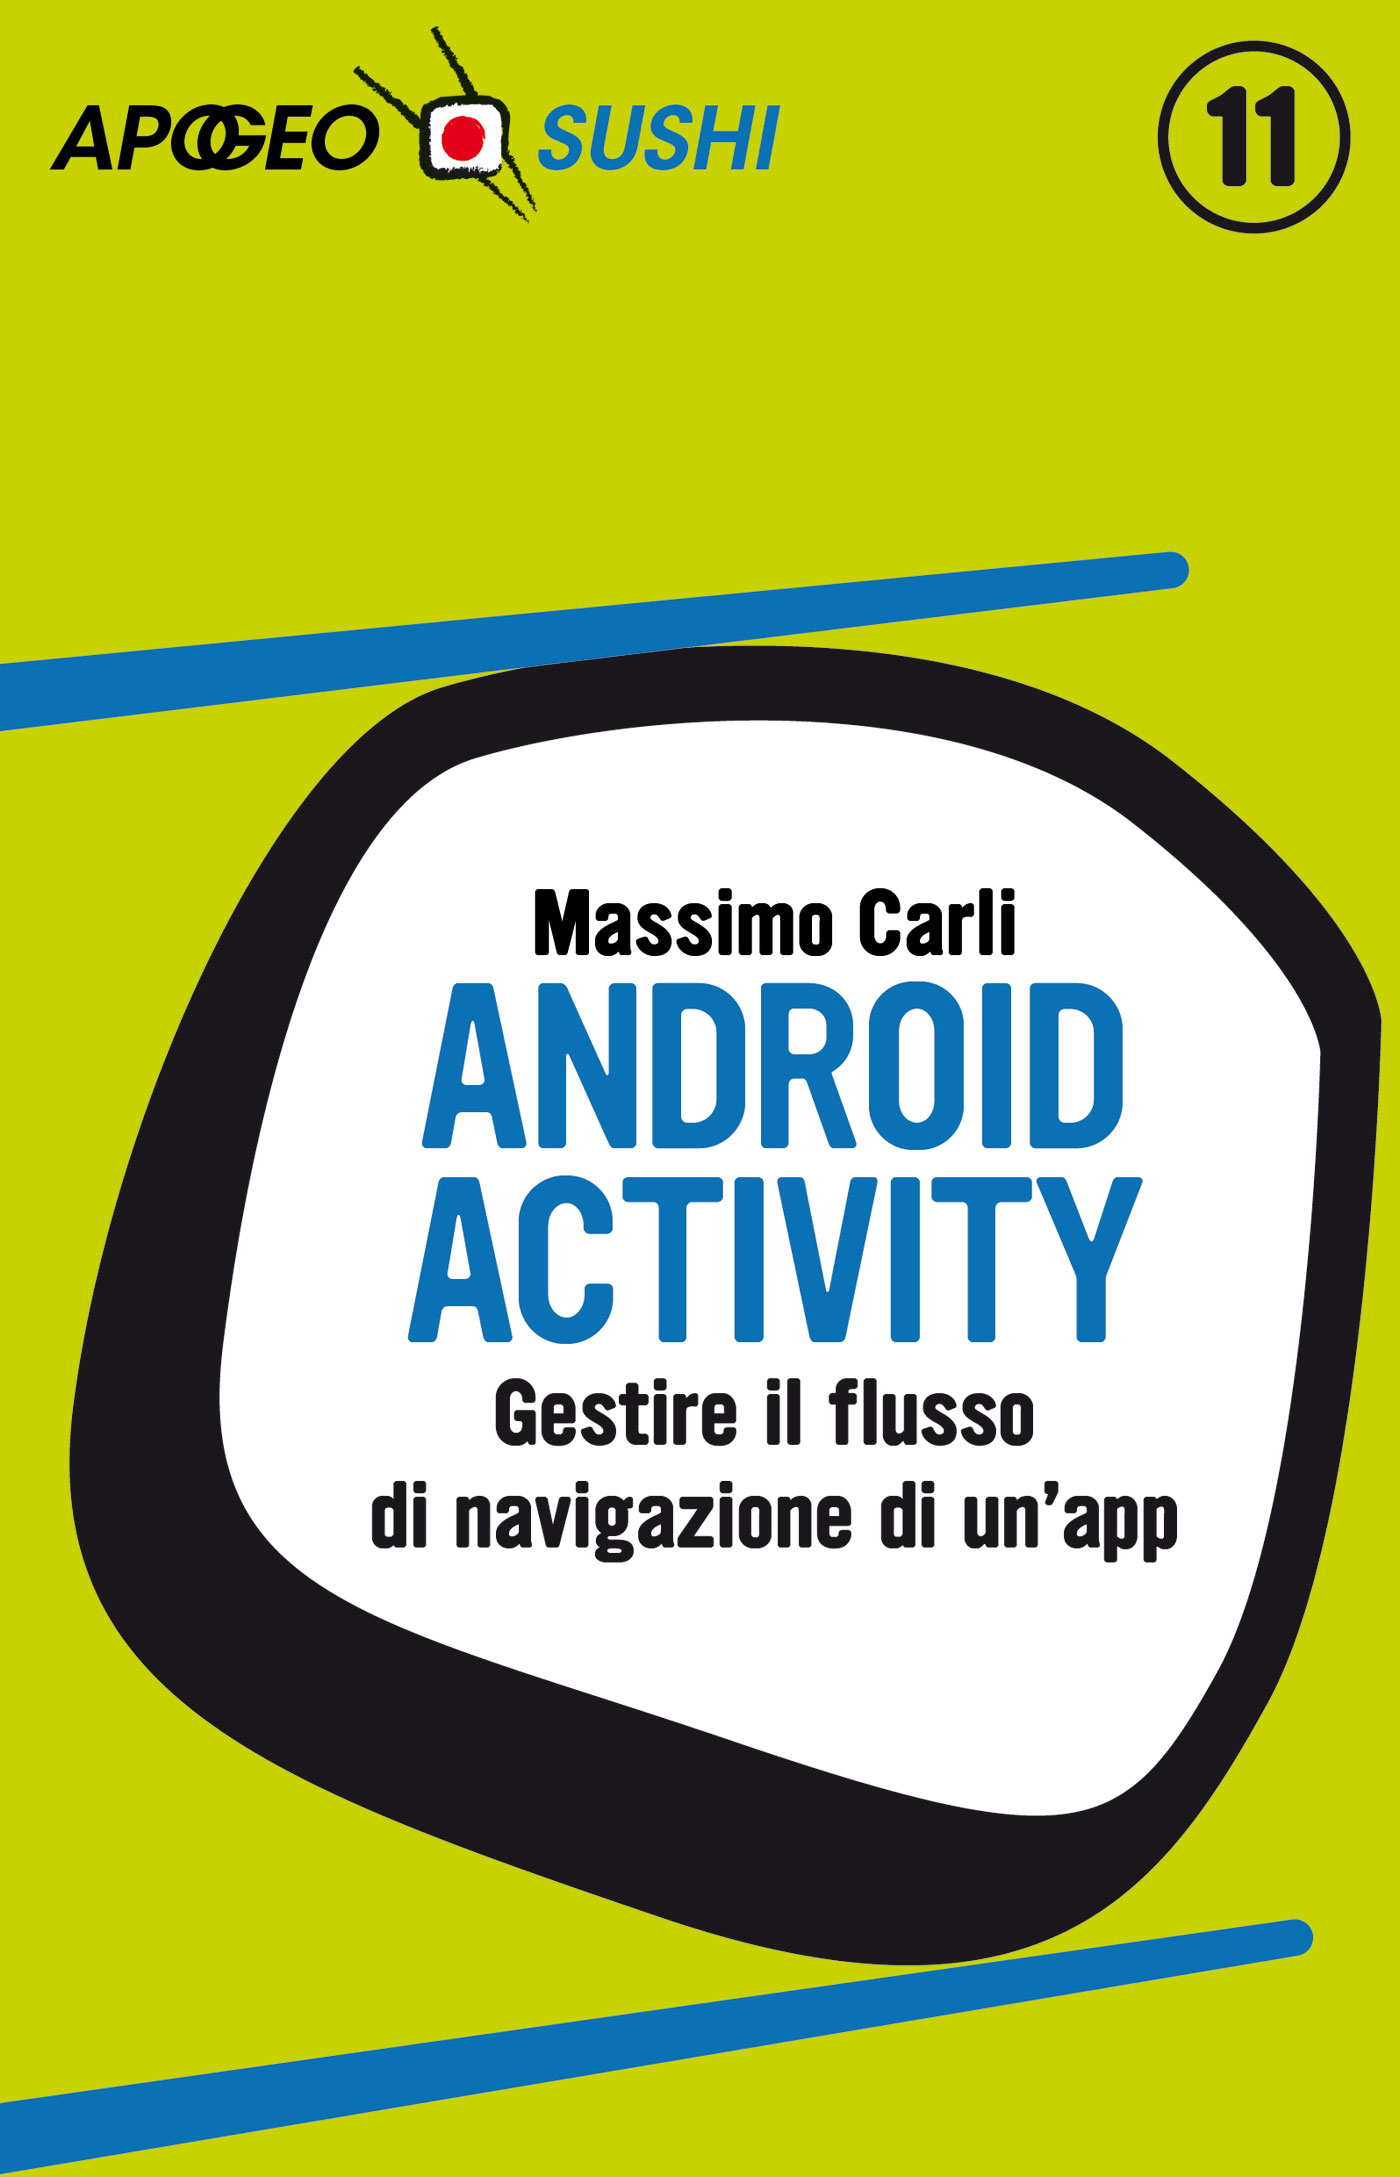 Android Activity – Massimo Carli